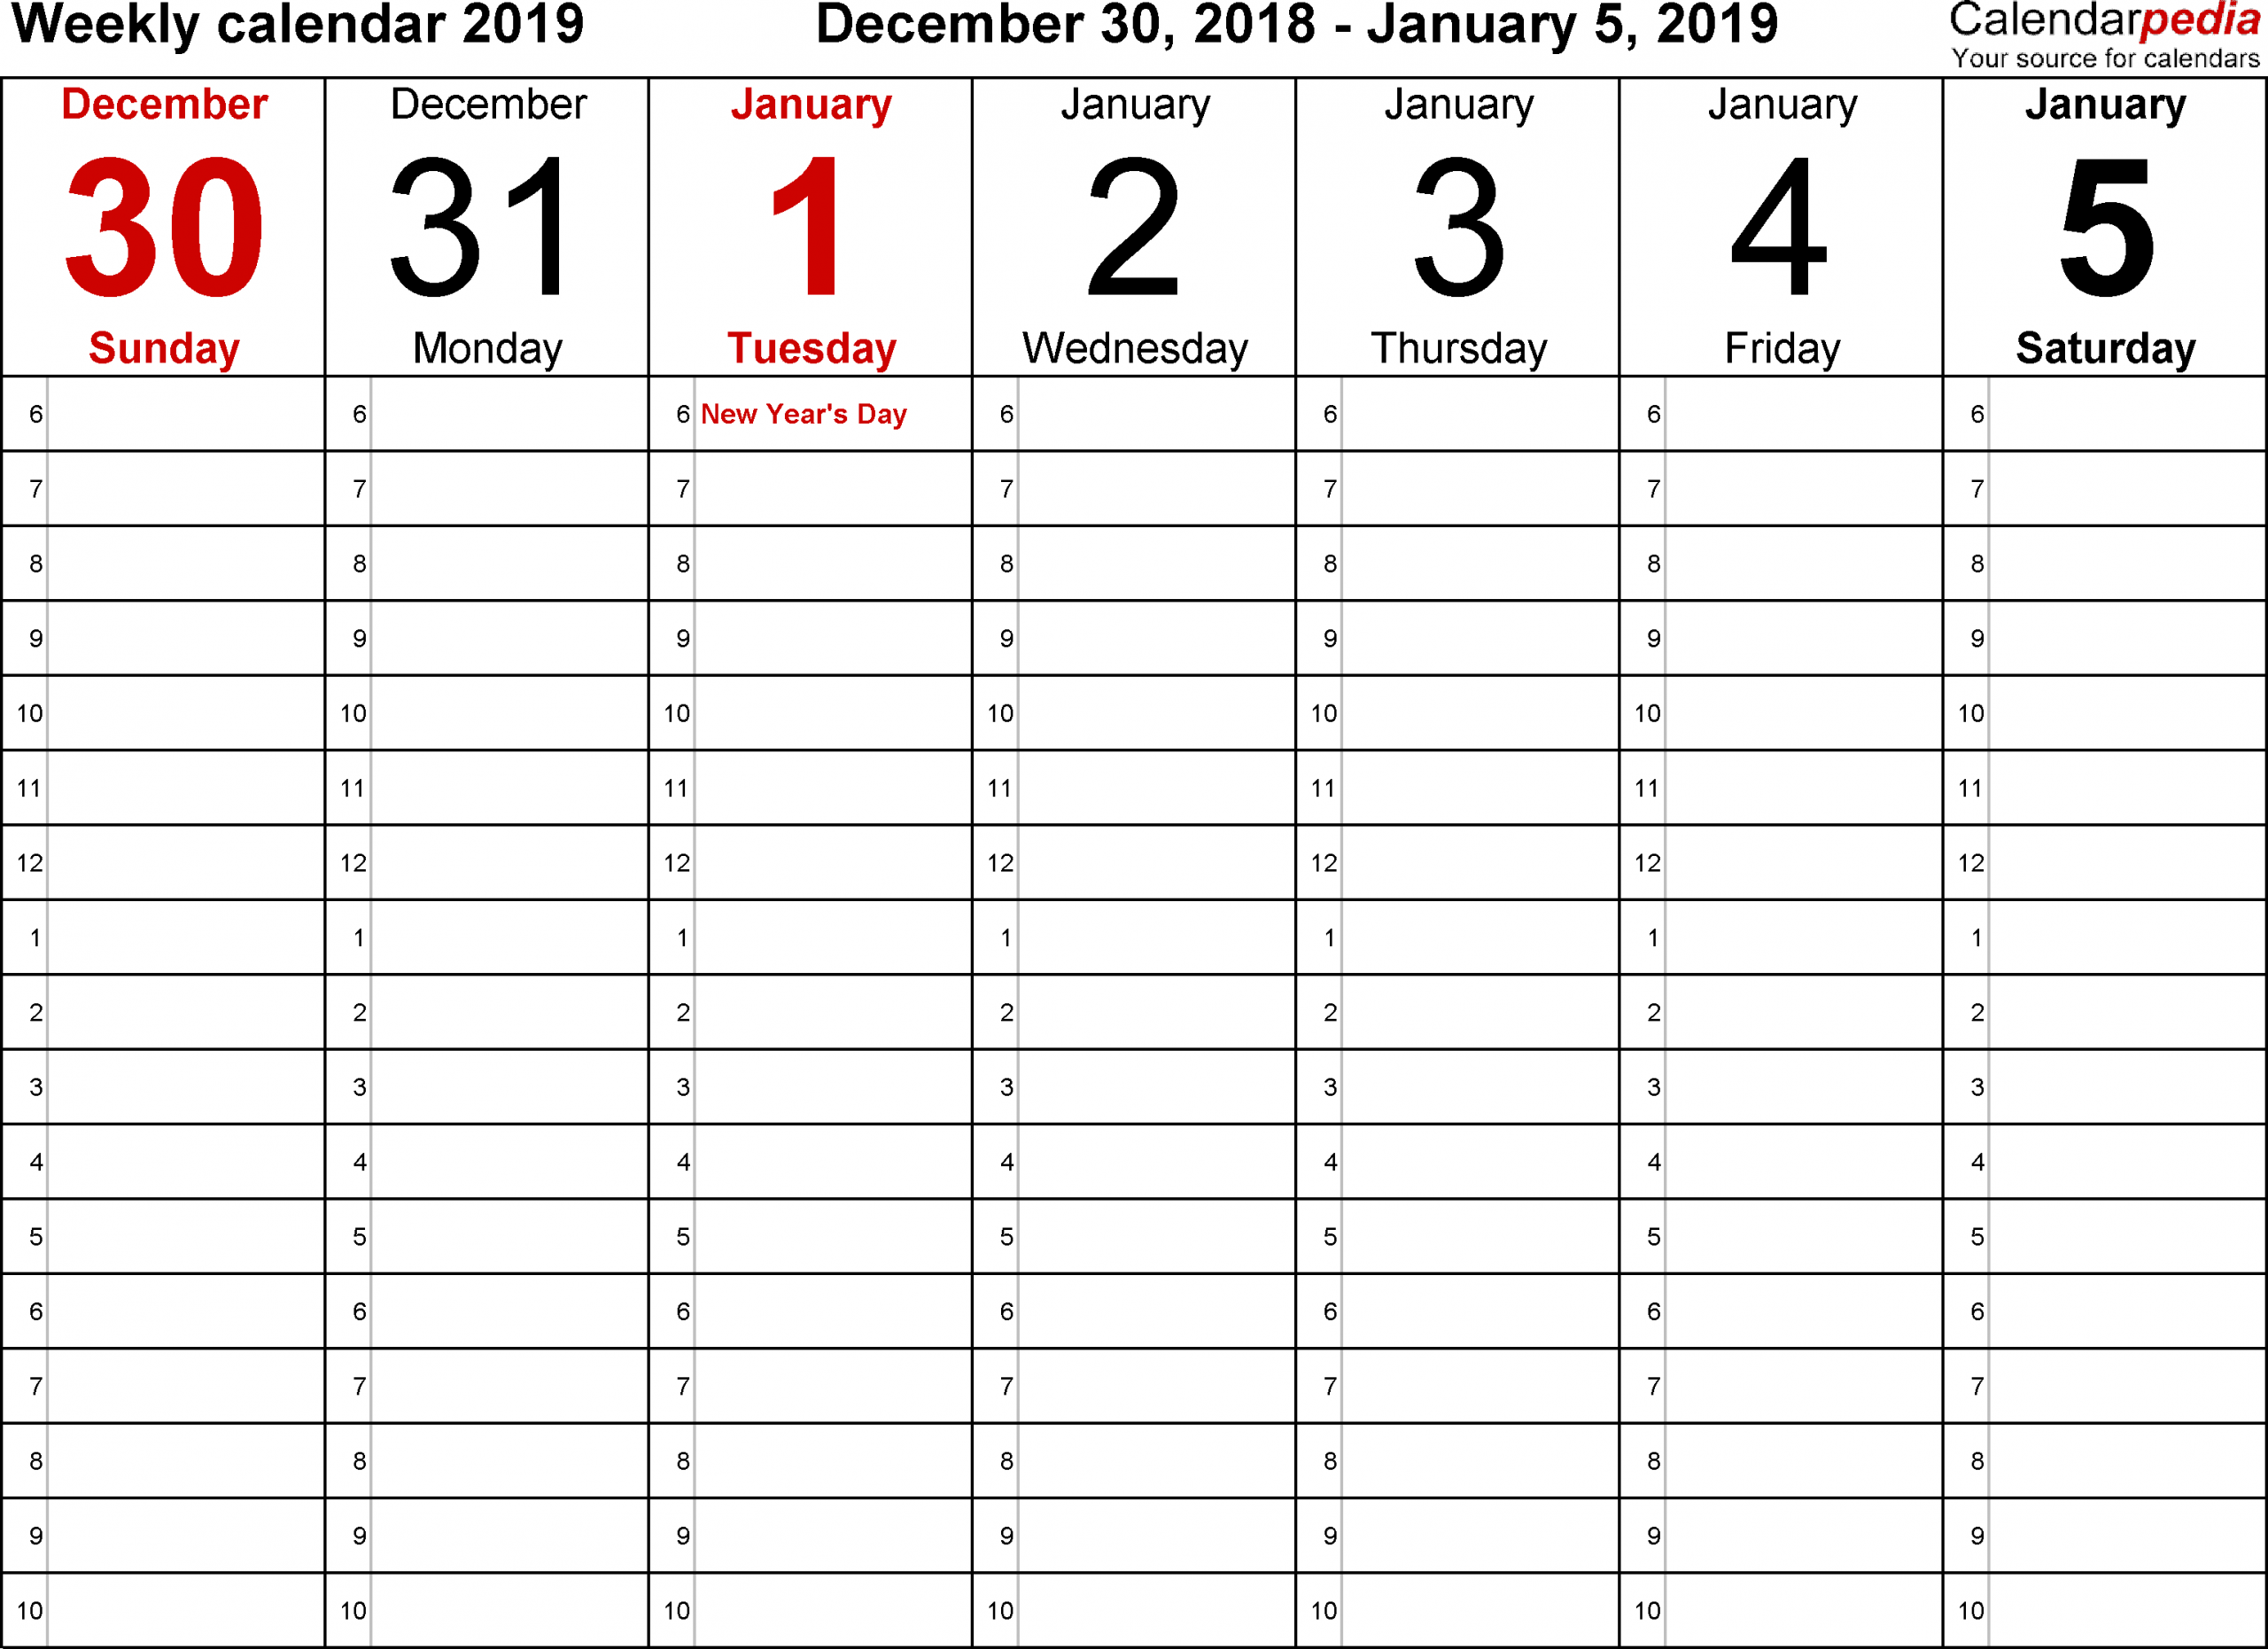 Daily Appointment Calendar Template 2019   Daily Calendar Free Blank Calendar For One Week Printable